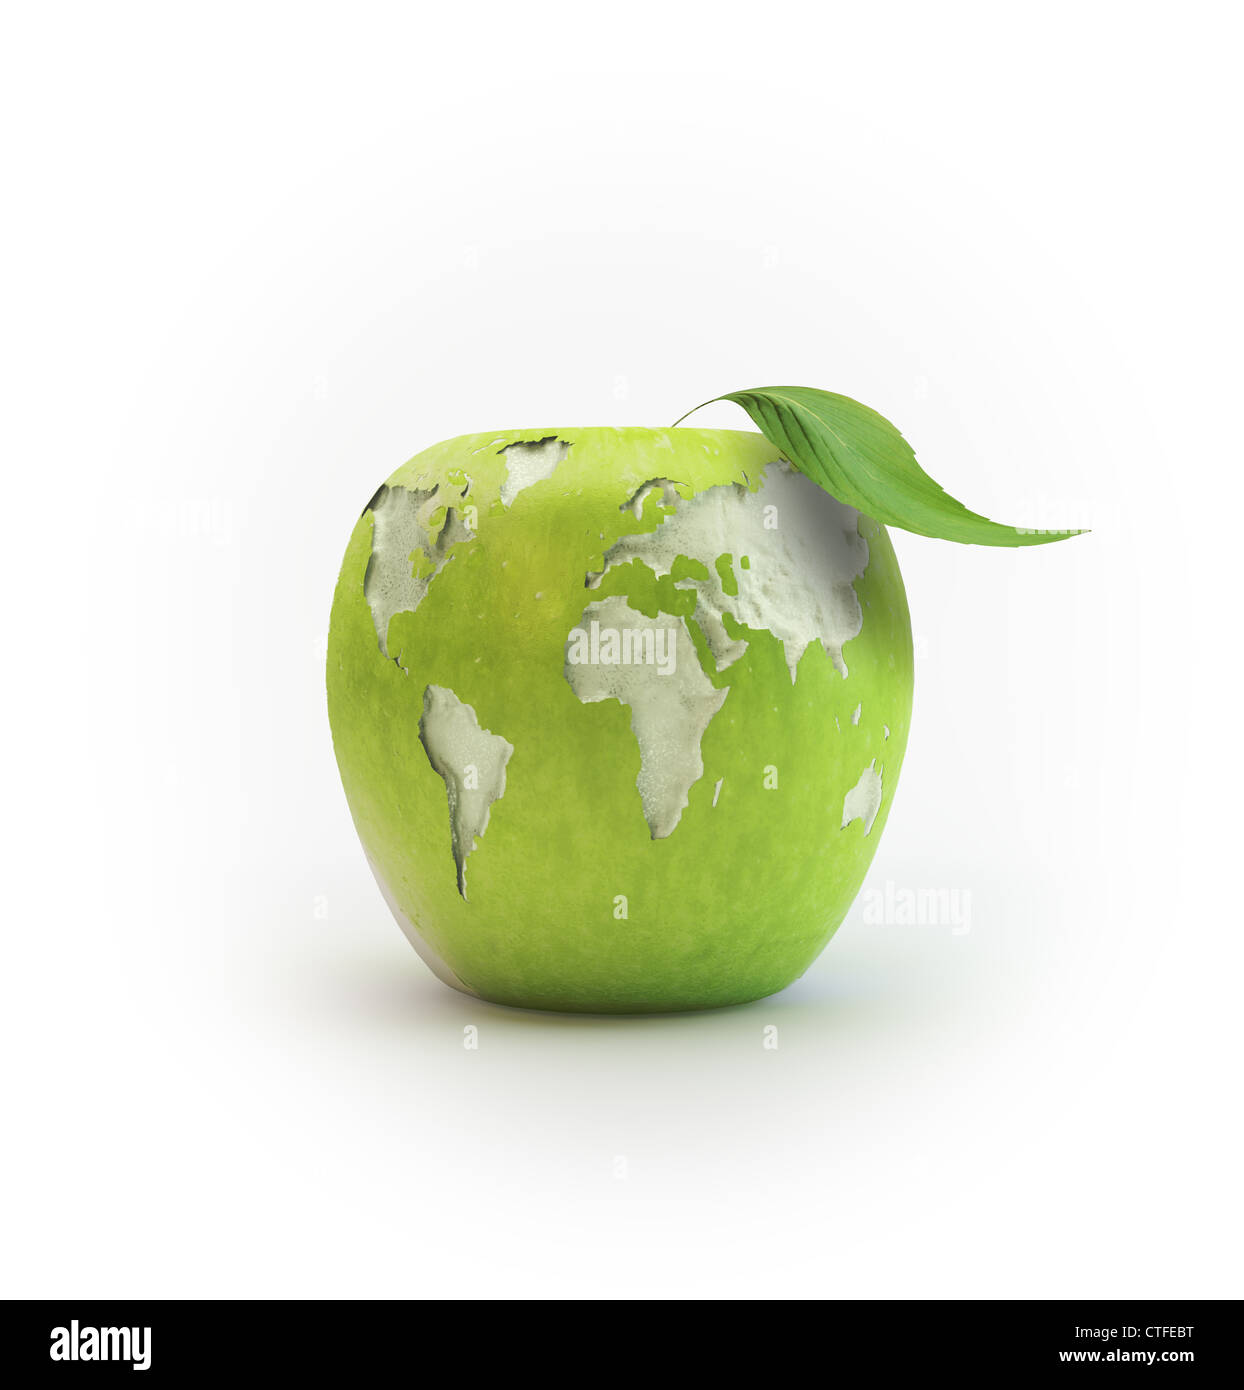 Peeled apple forming the world map Stock Photo